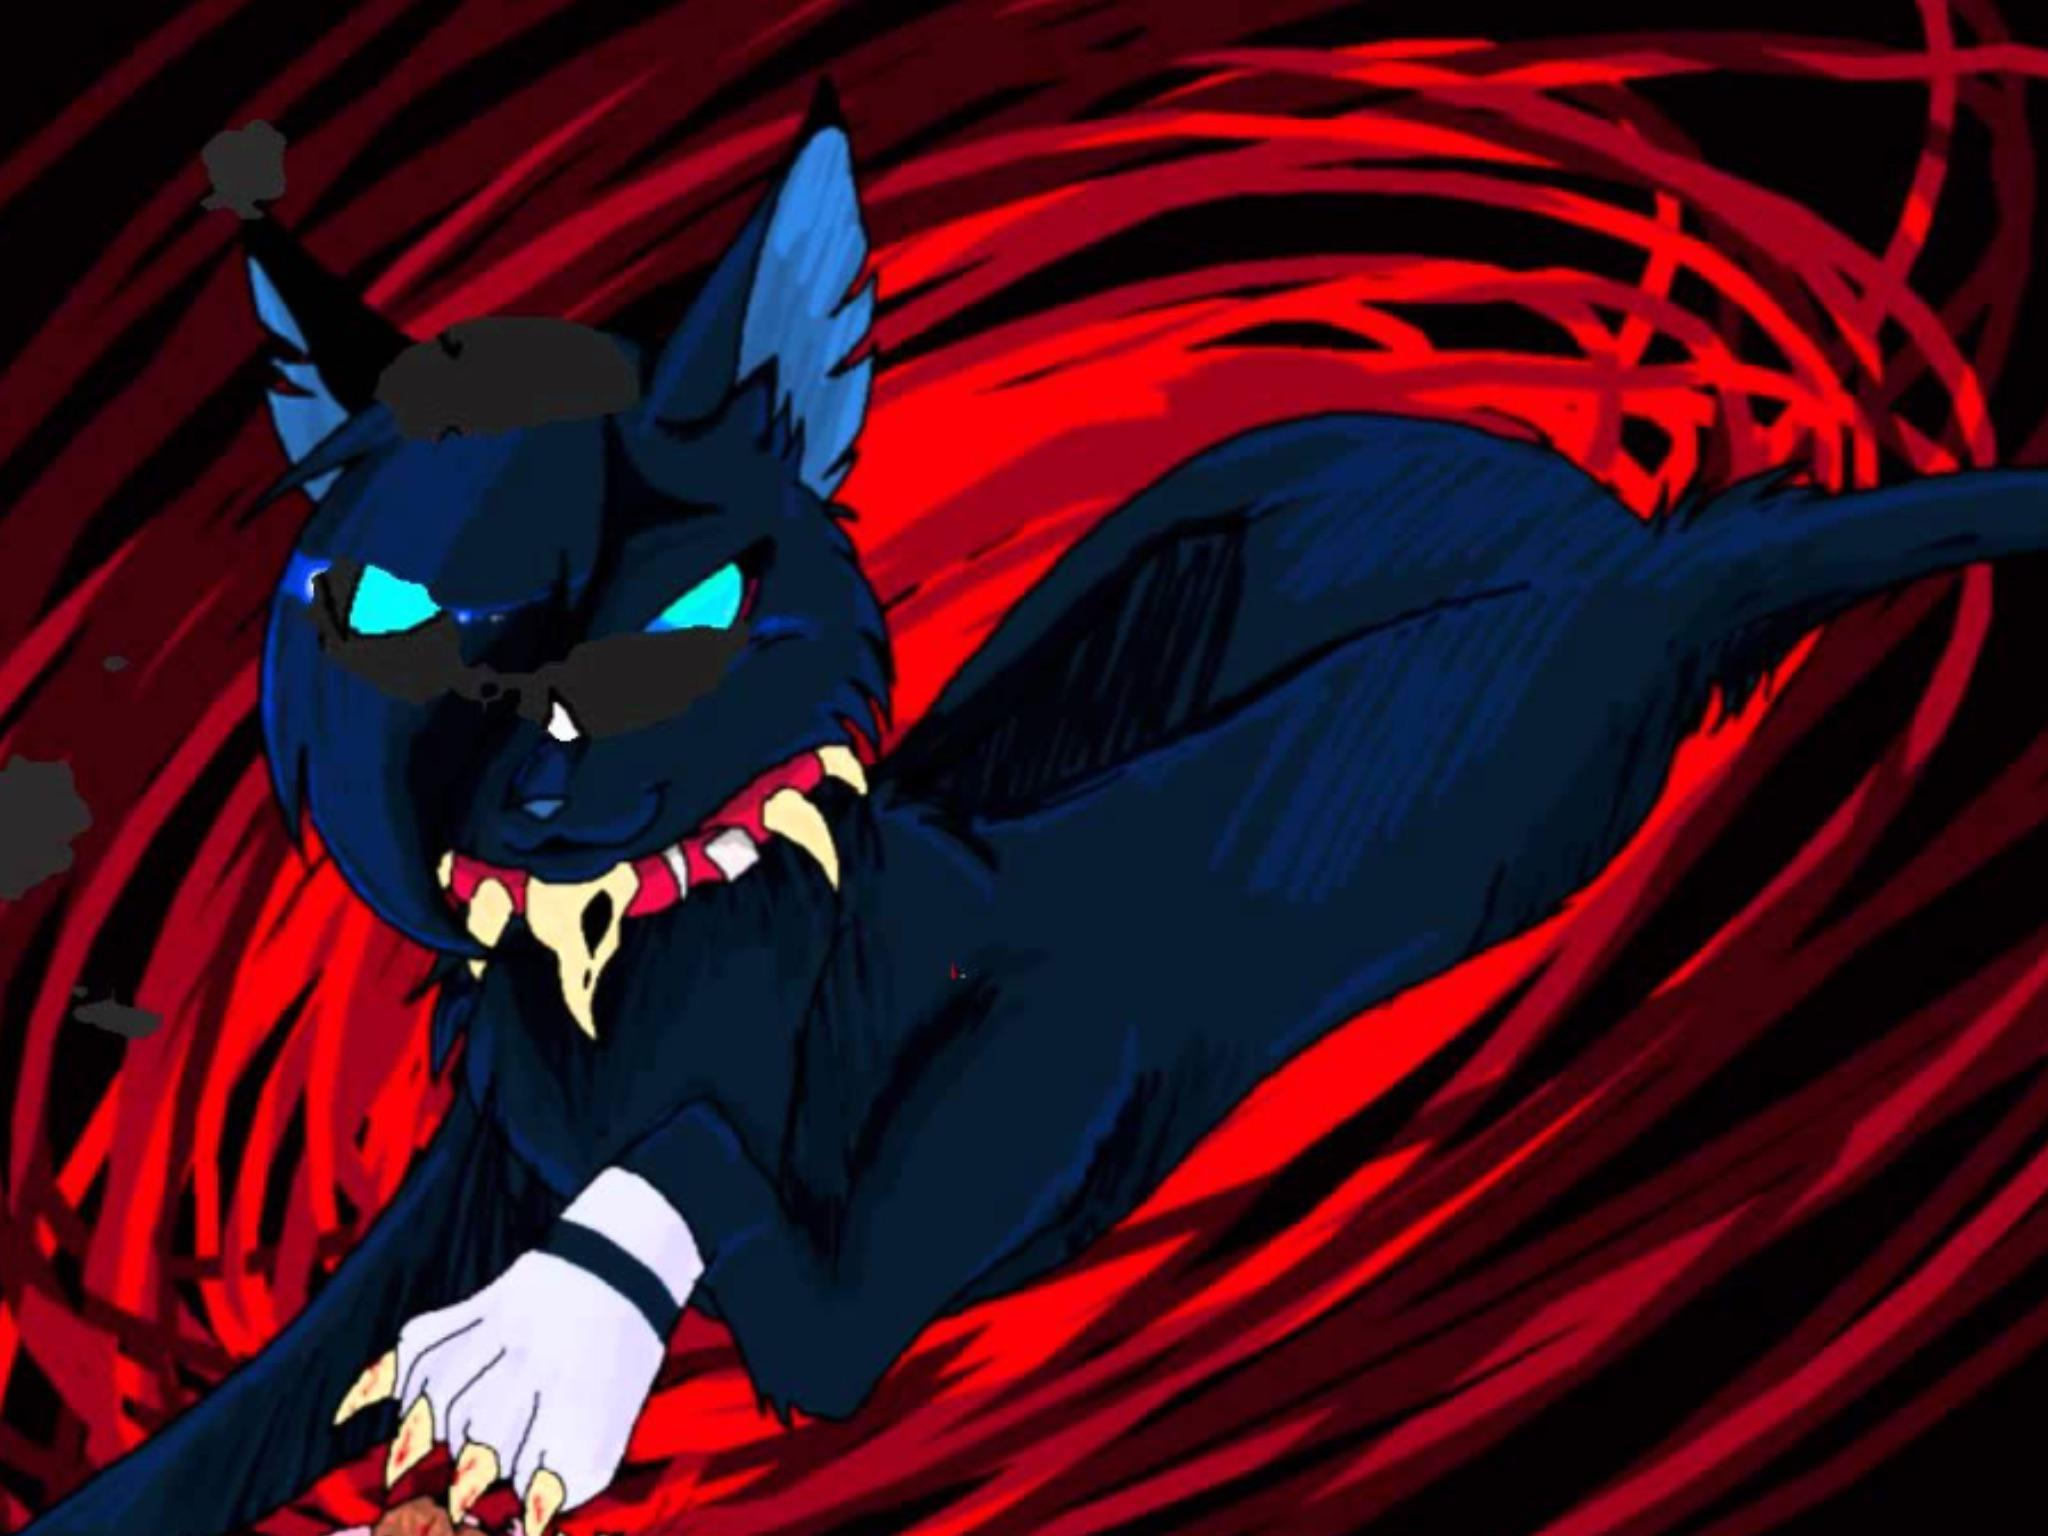 Who is better? Tigerstar or Scourge